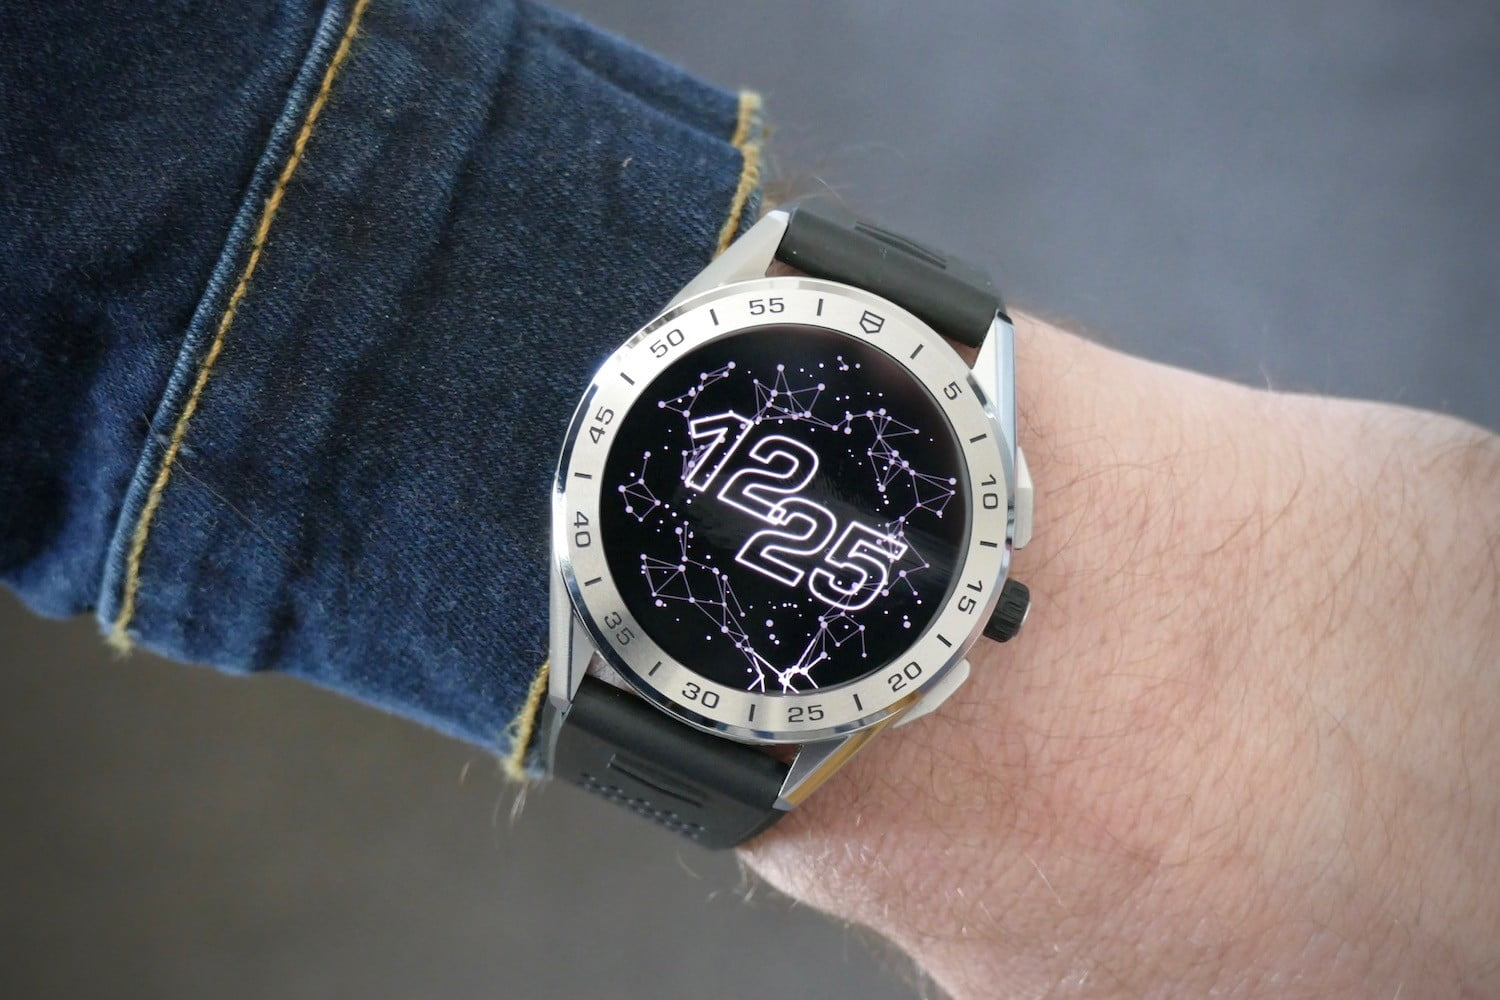 tag heuer connected 2020 smartwatch review orbital face